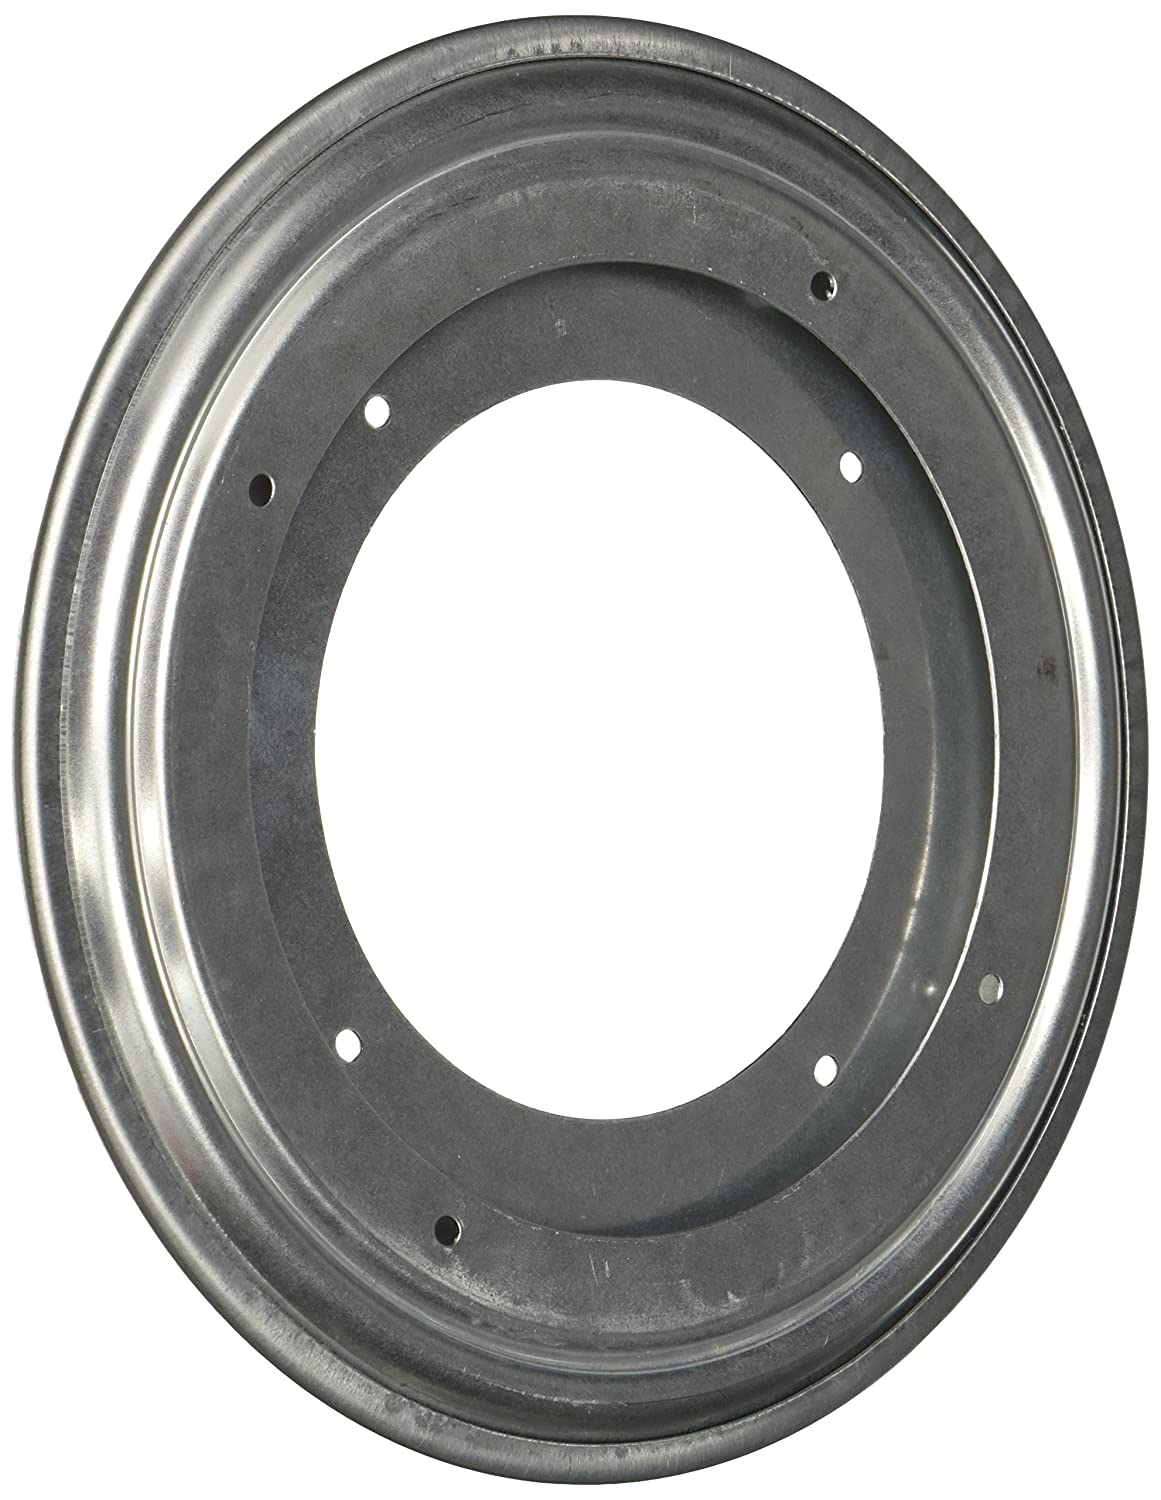 BC Precision BC28LS Two 8 Lazy Susan Round Turntable Bearings-5/16 Thick & 700 lb Capacity